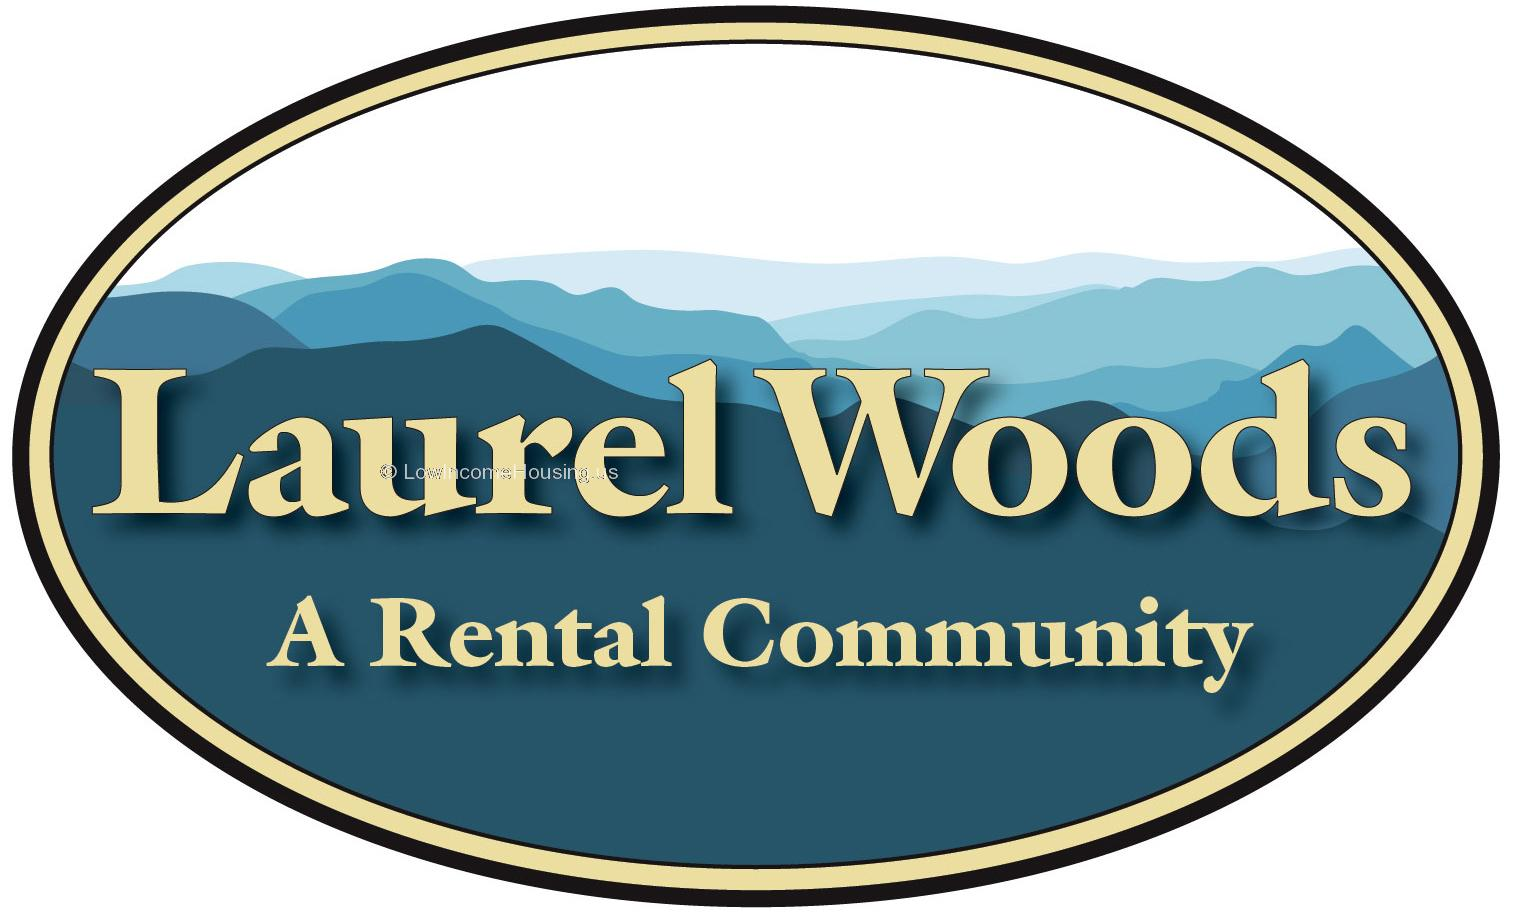 Laurel Woods